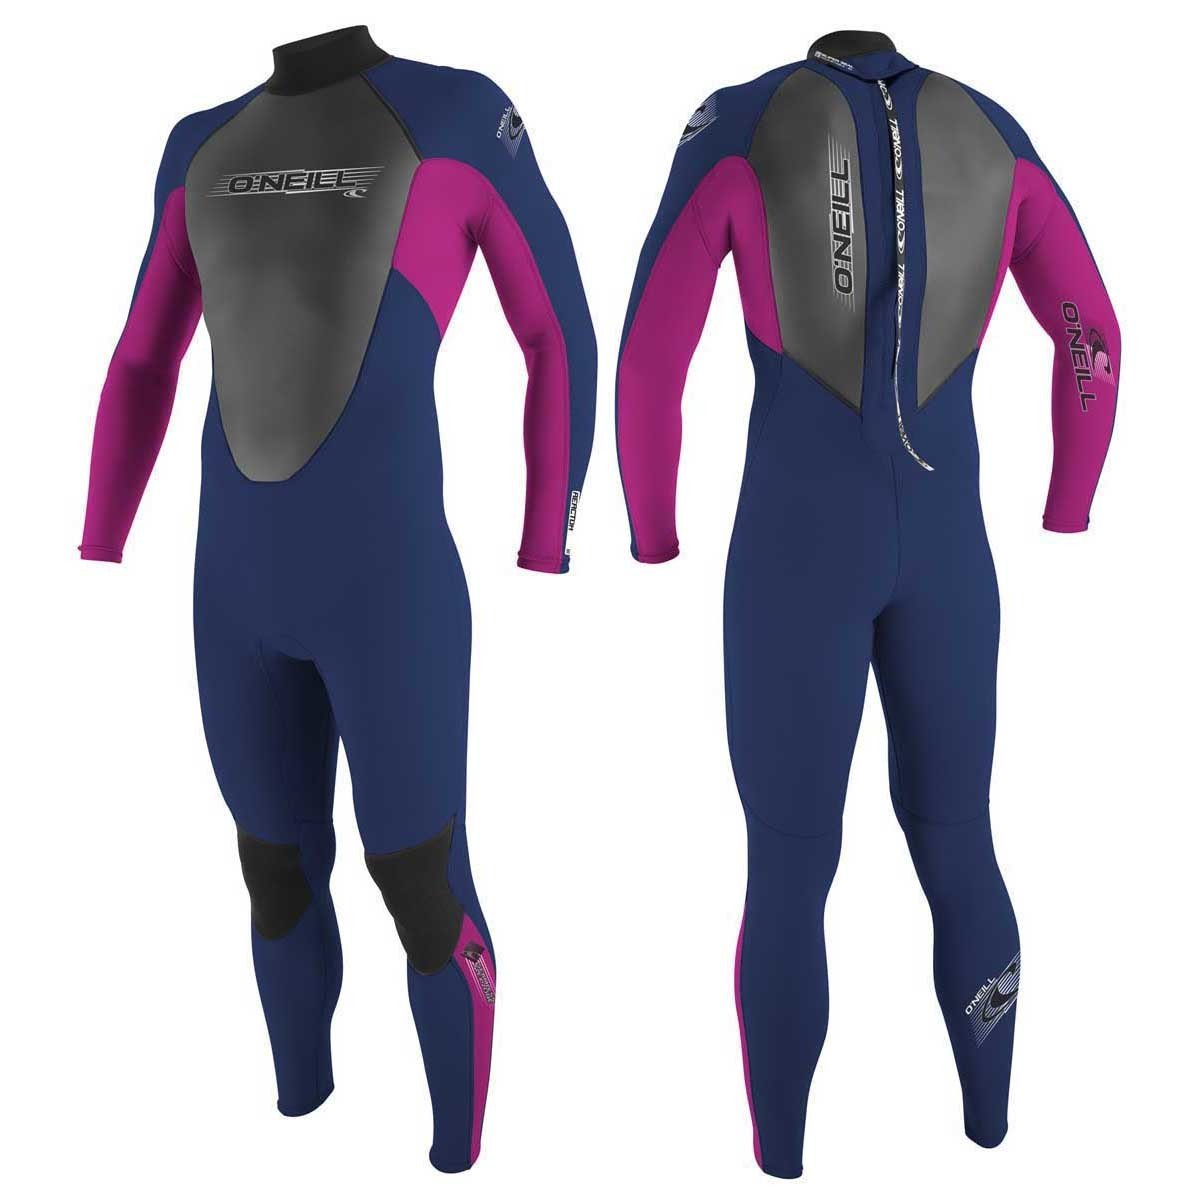 O'NEILL Wetsuit Reactor Youth 3/2